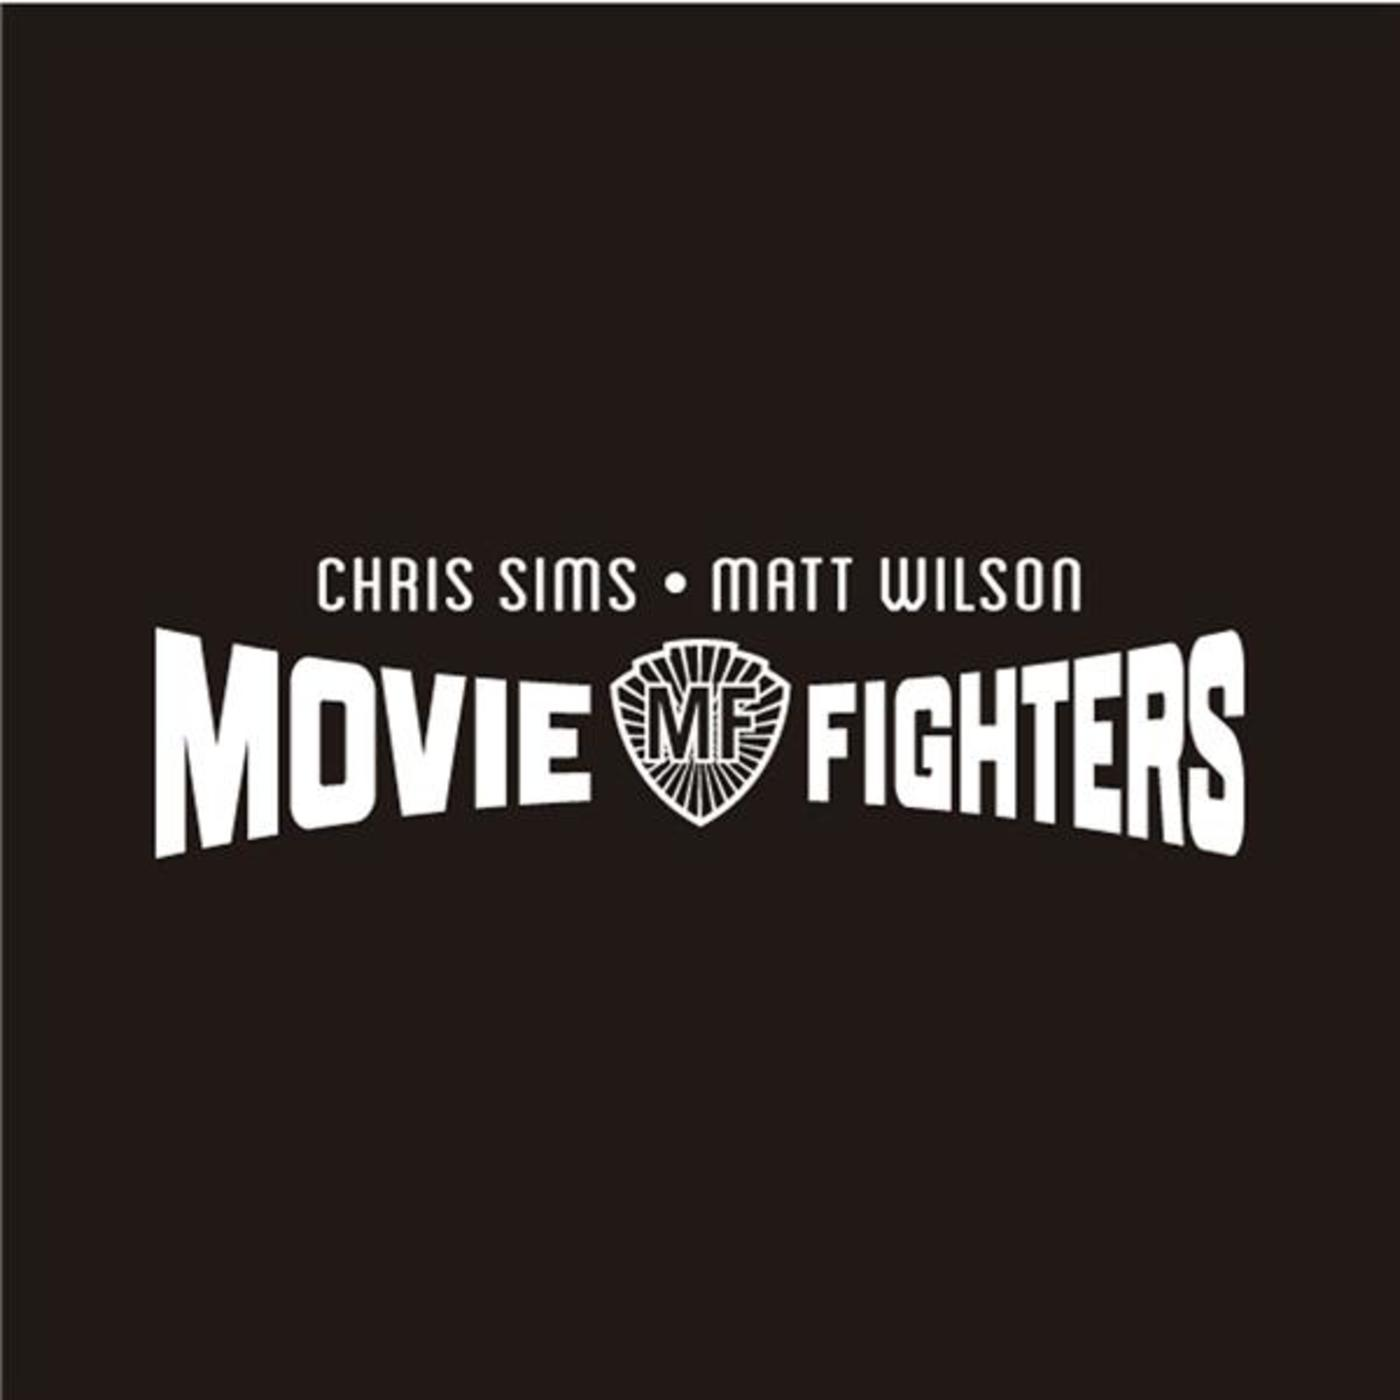 Movie Fighters